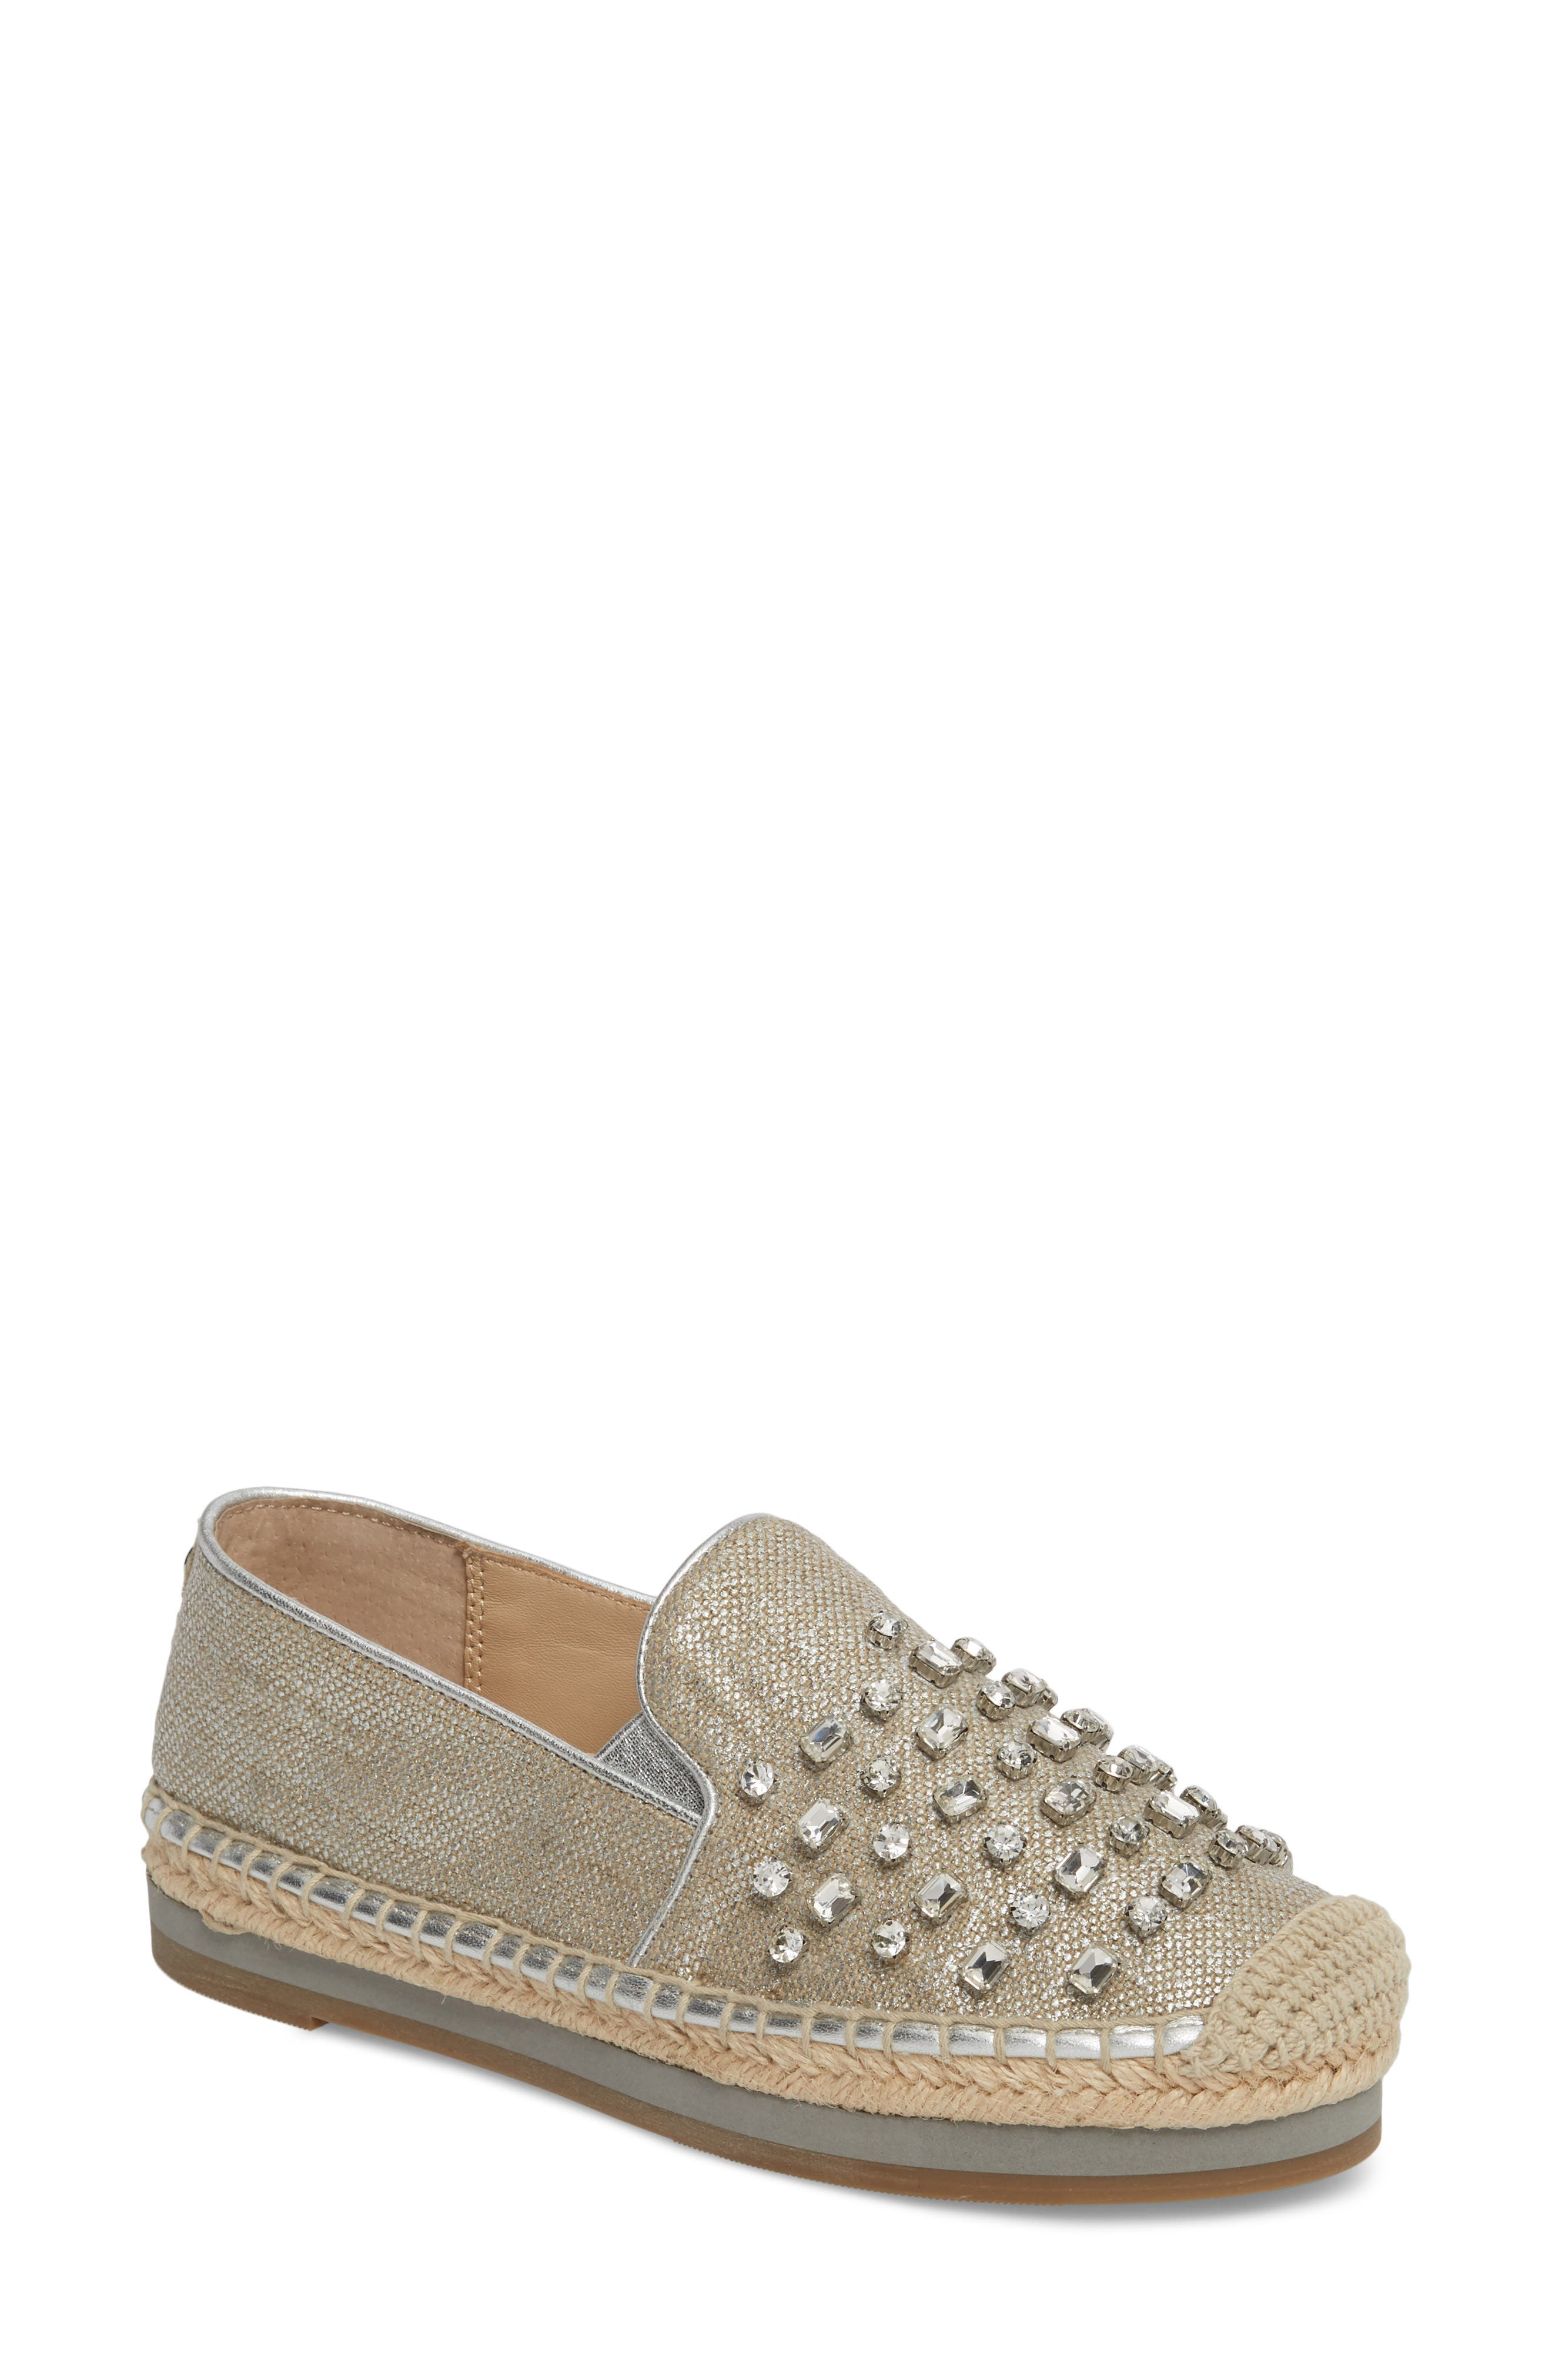 Susie Flat,                         Main,                         color, SILVER STONE FABRIC